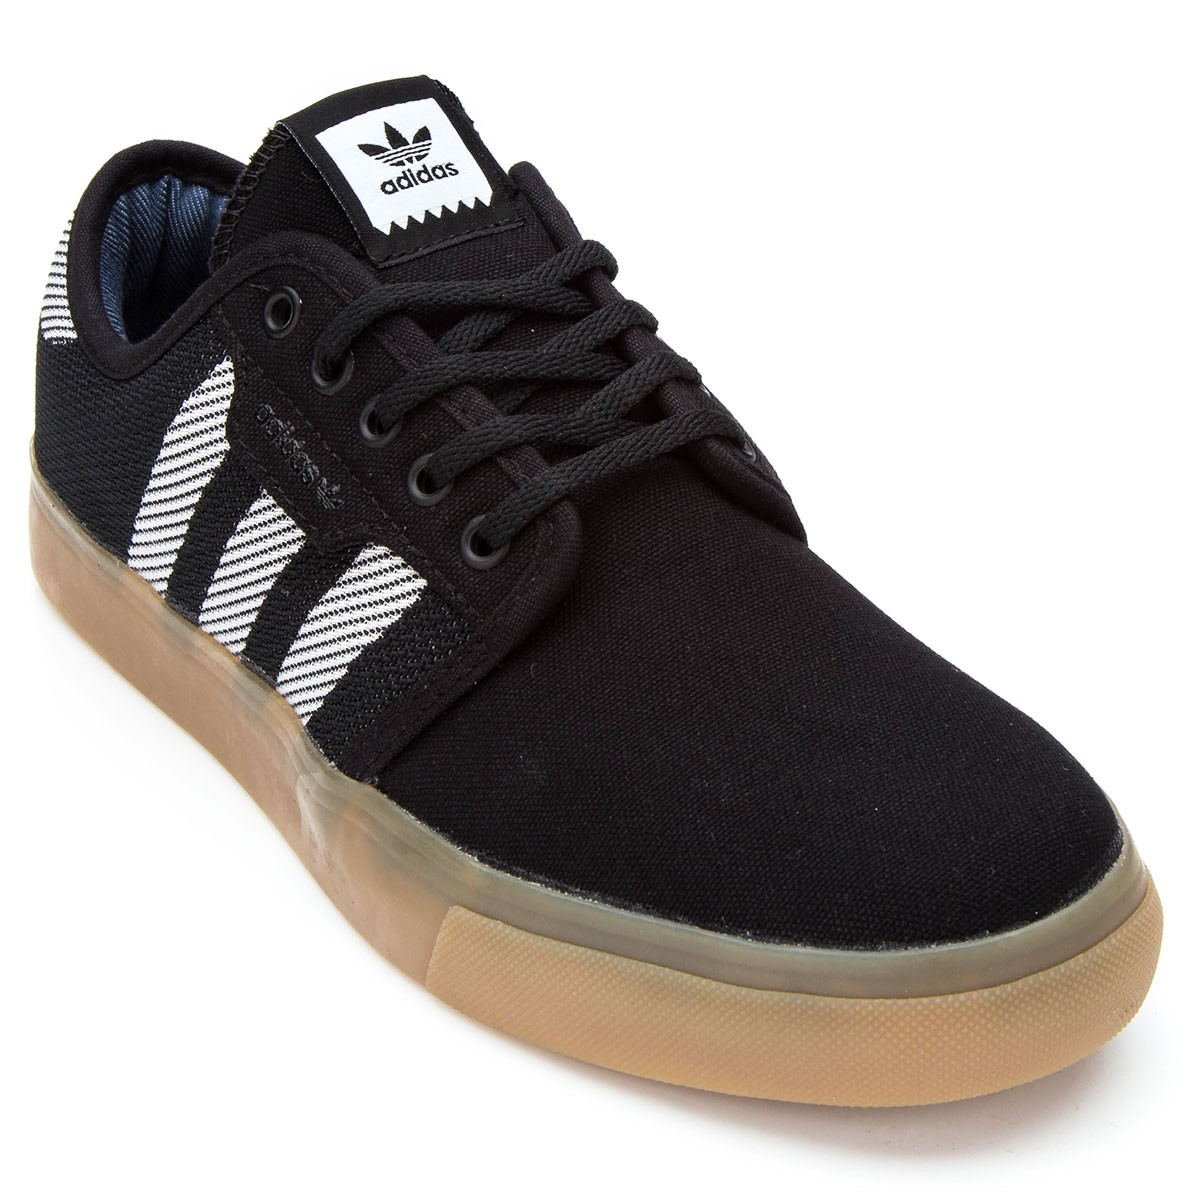 Adidas Black Shoes With White Soles